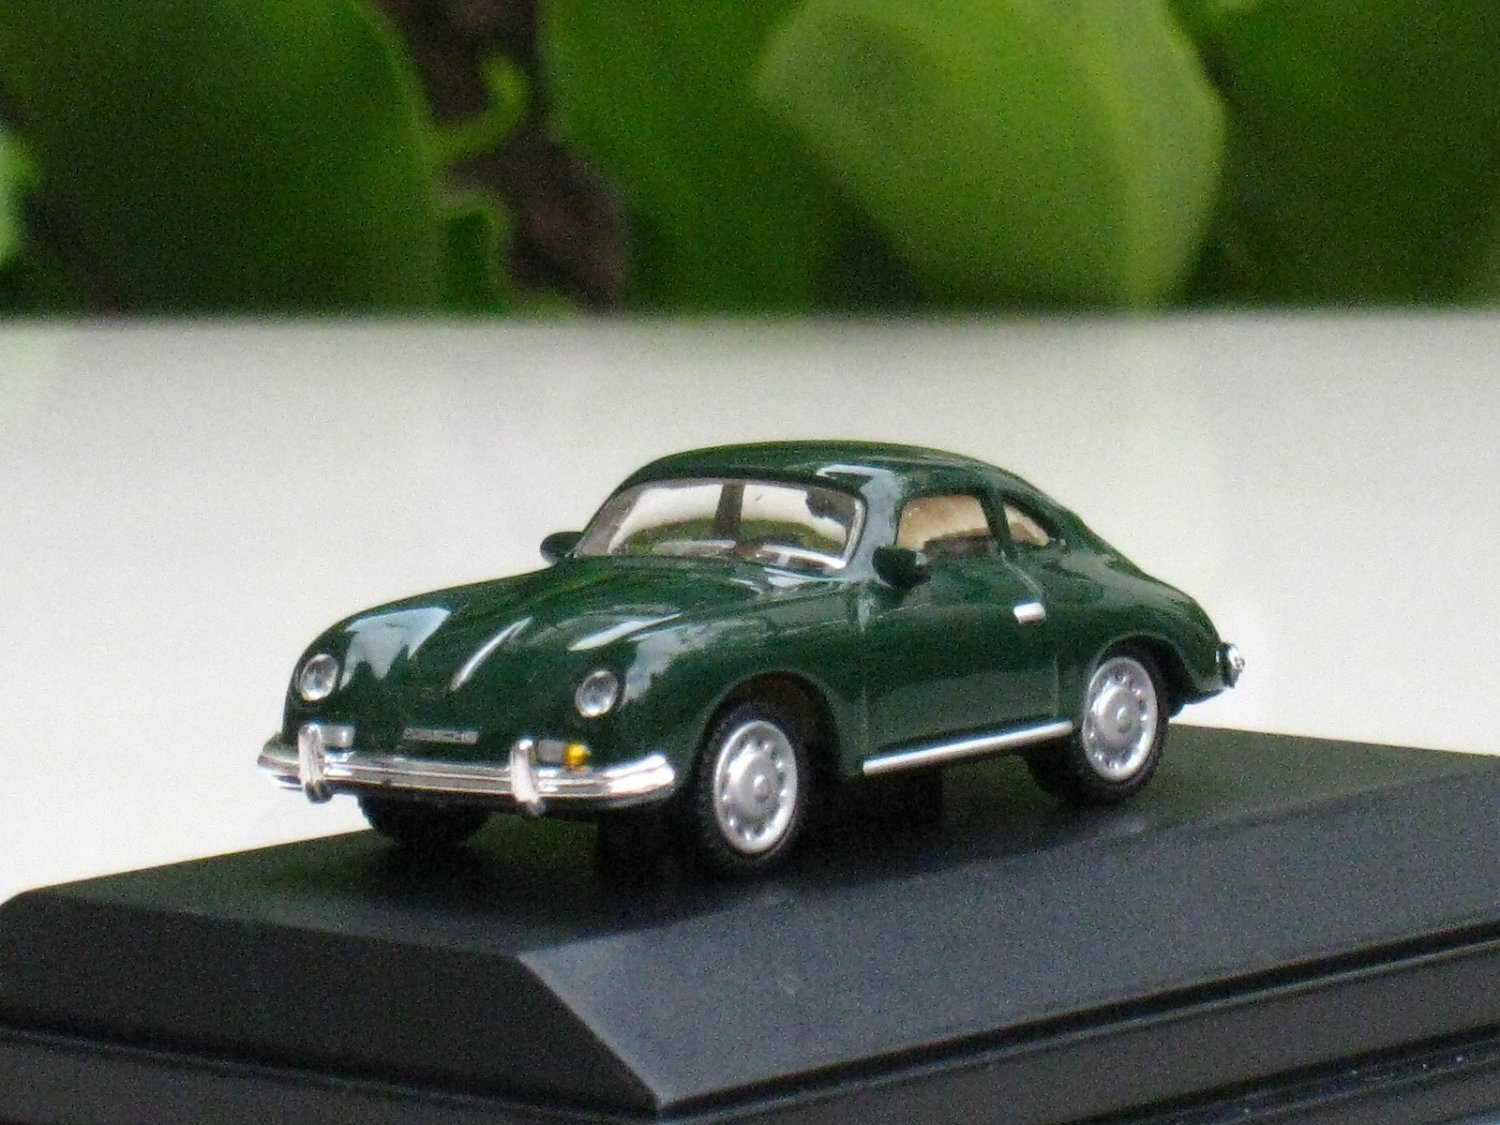 High Speed 1/87 Diecast Model Car Porsche 356A GREEN Classic Car